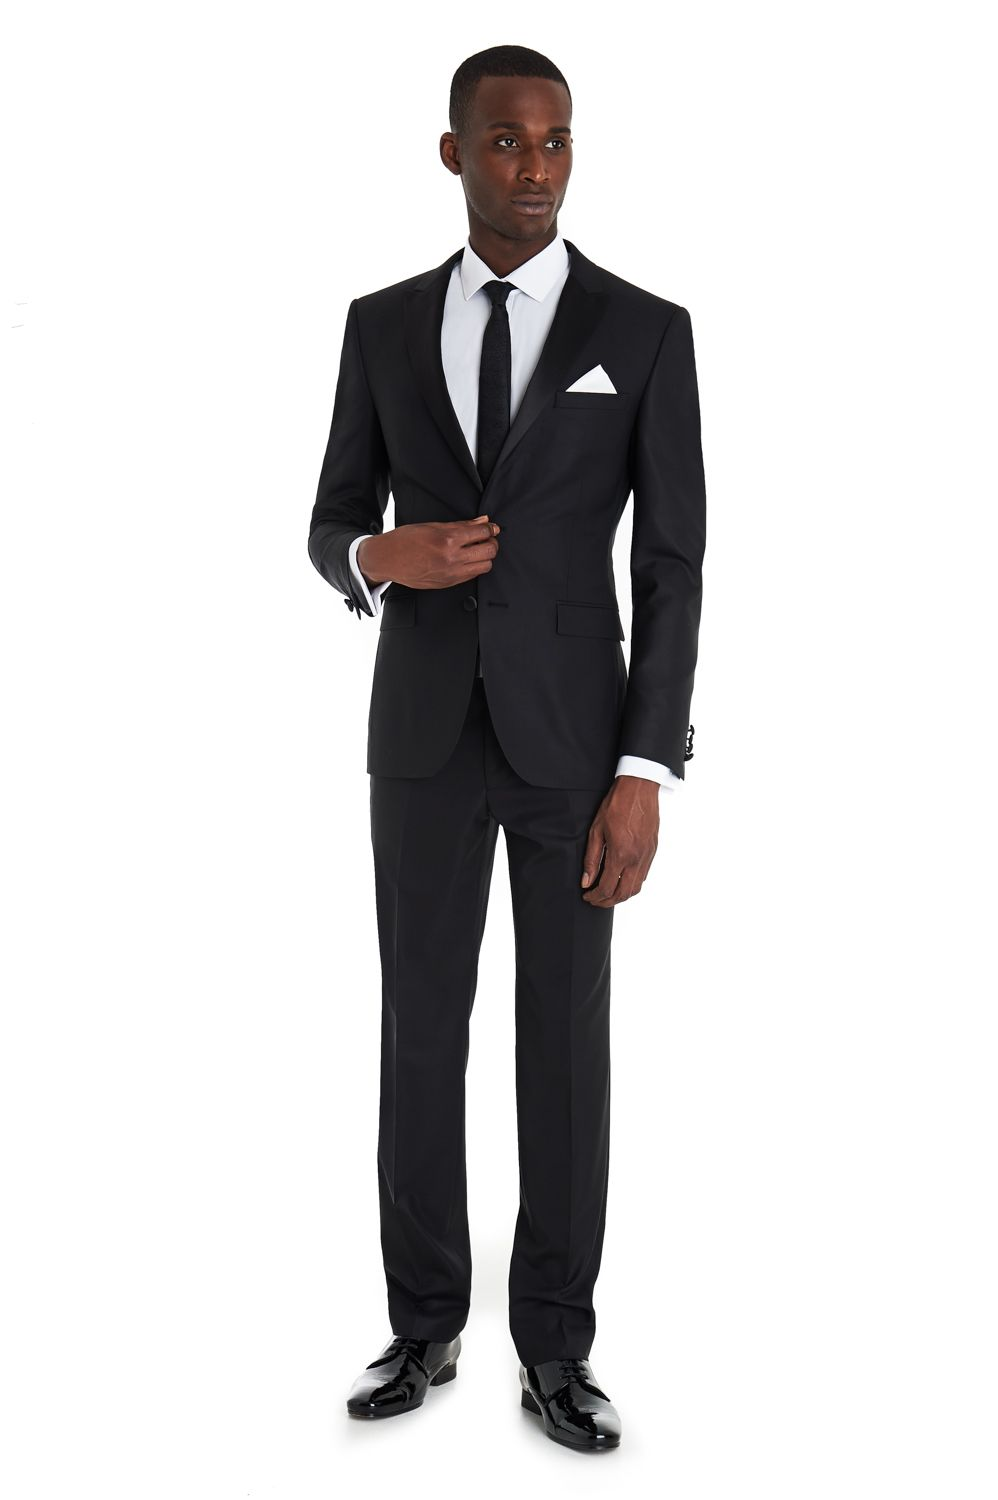 DKNY Slim Fit Black Dress Suit | Suits | Pinterest | Suits ...